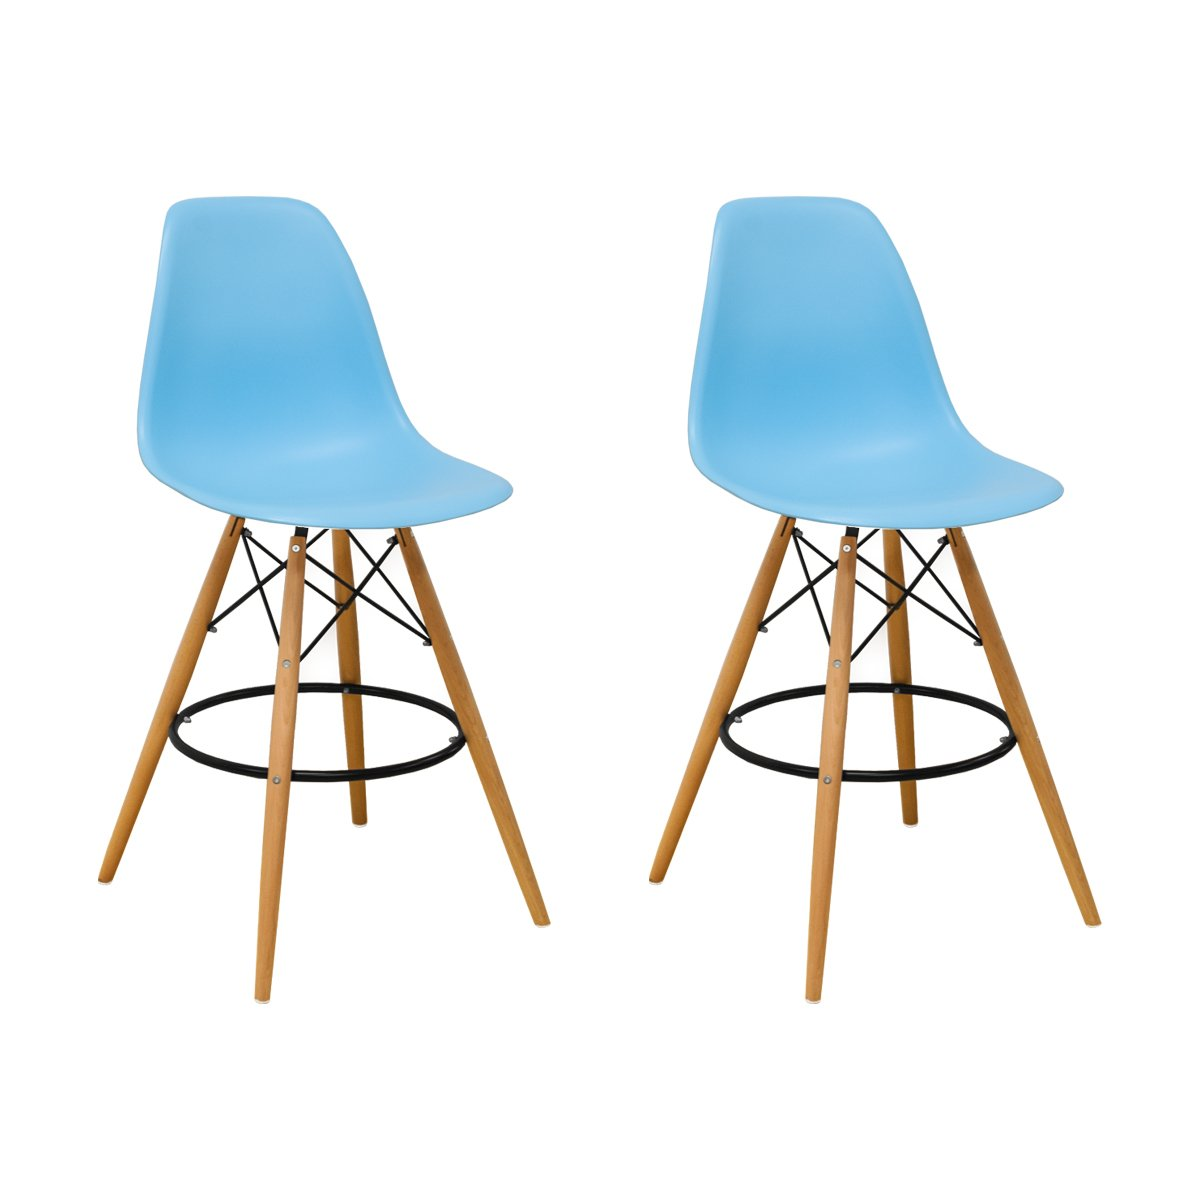 Mod Made Mid Century Modern Armless Paris Tower Barstool Chair with Natural Wood Legs for Bar or Kitchen- Blue (Set of 2)